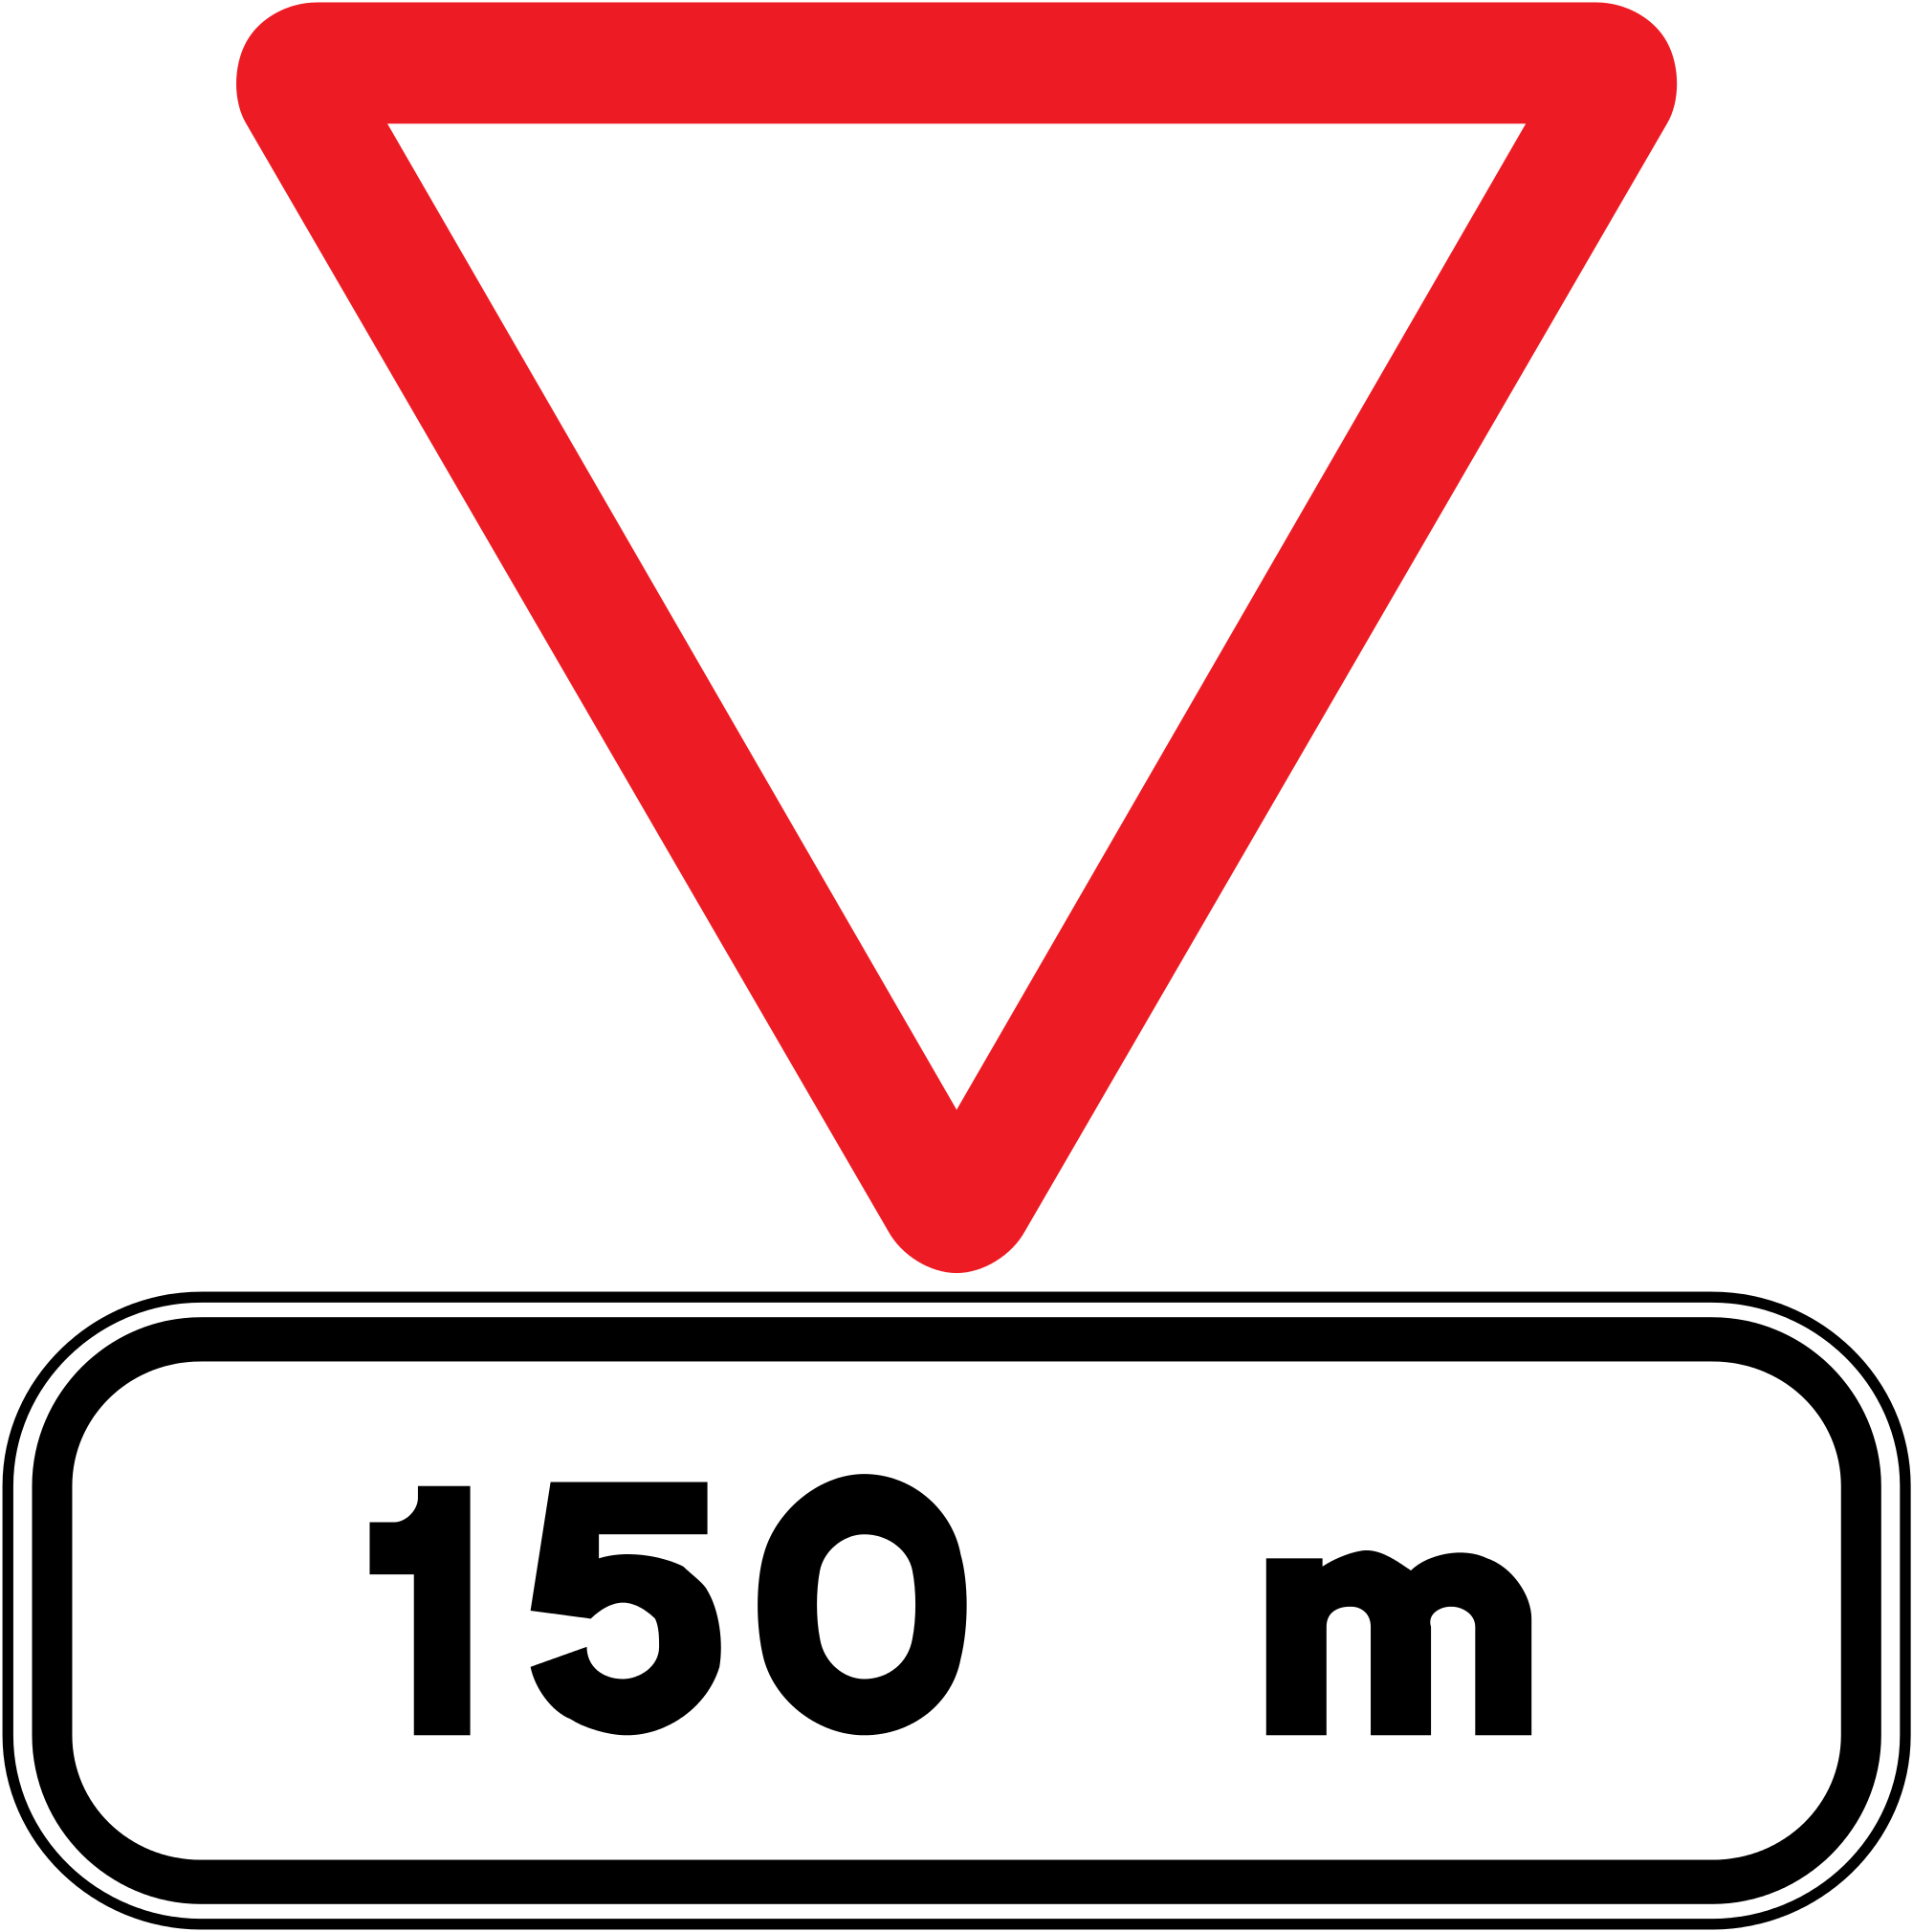 2000x2020 Stop Sign On Pole Transparent Png